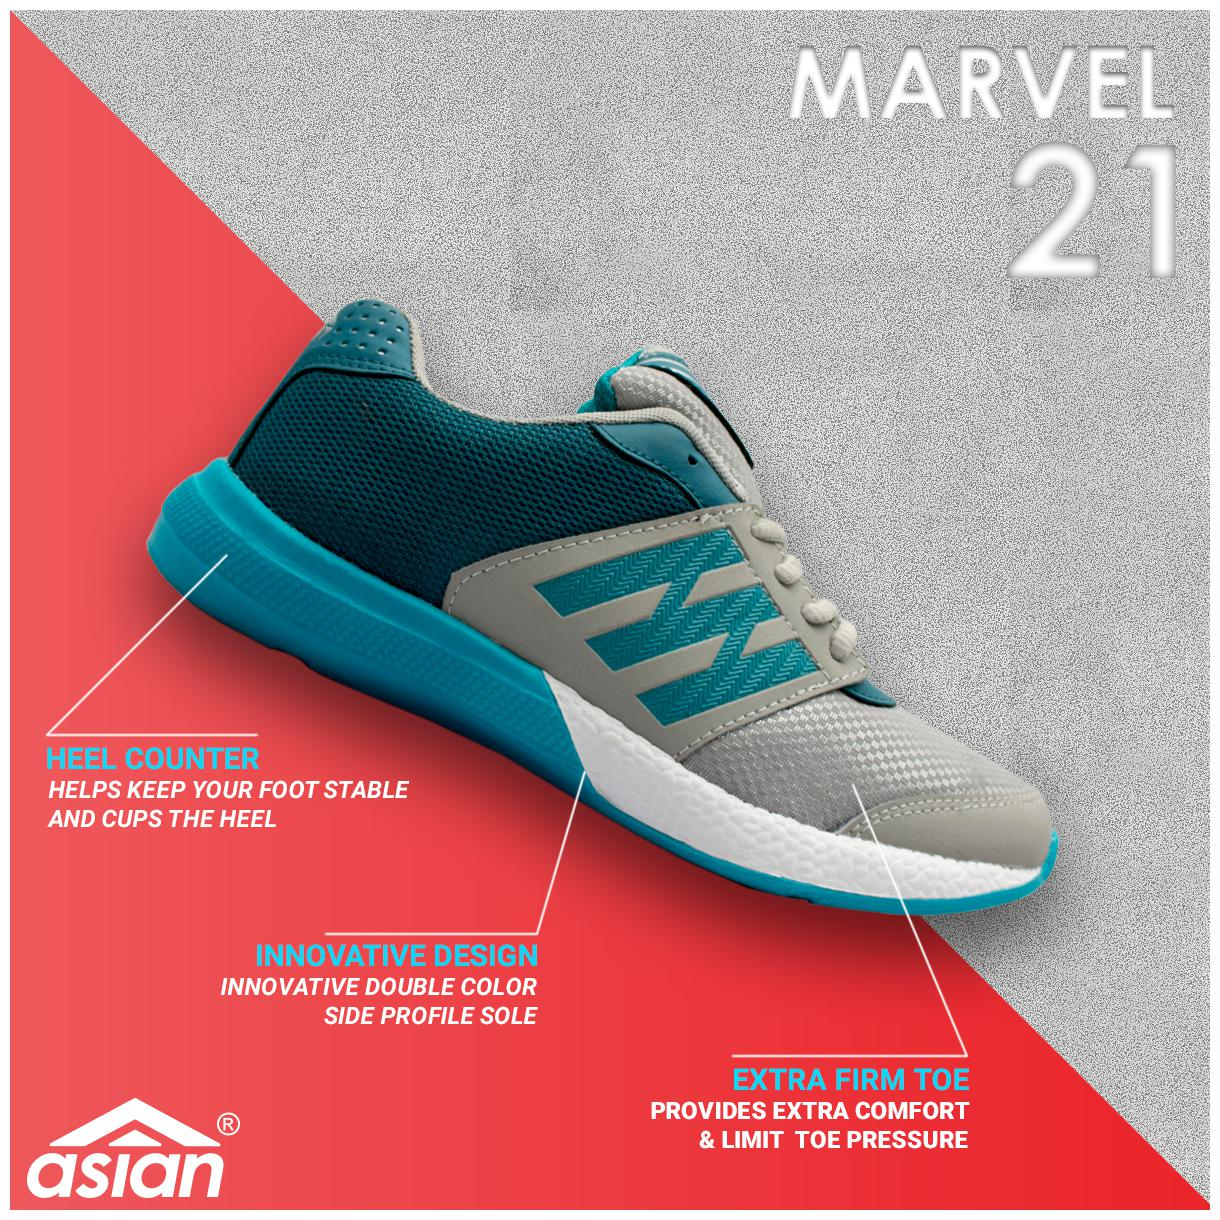 Asian Marvel-21 Grey Green Running Shoes For Men